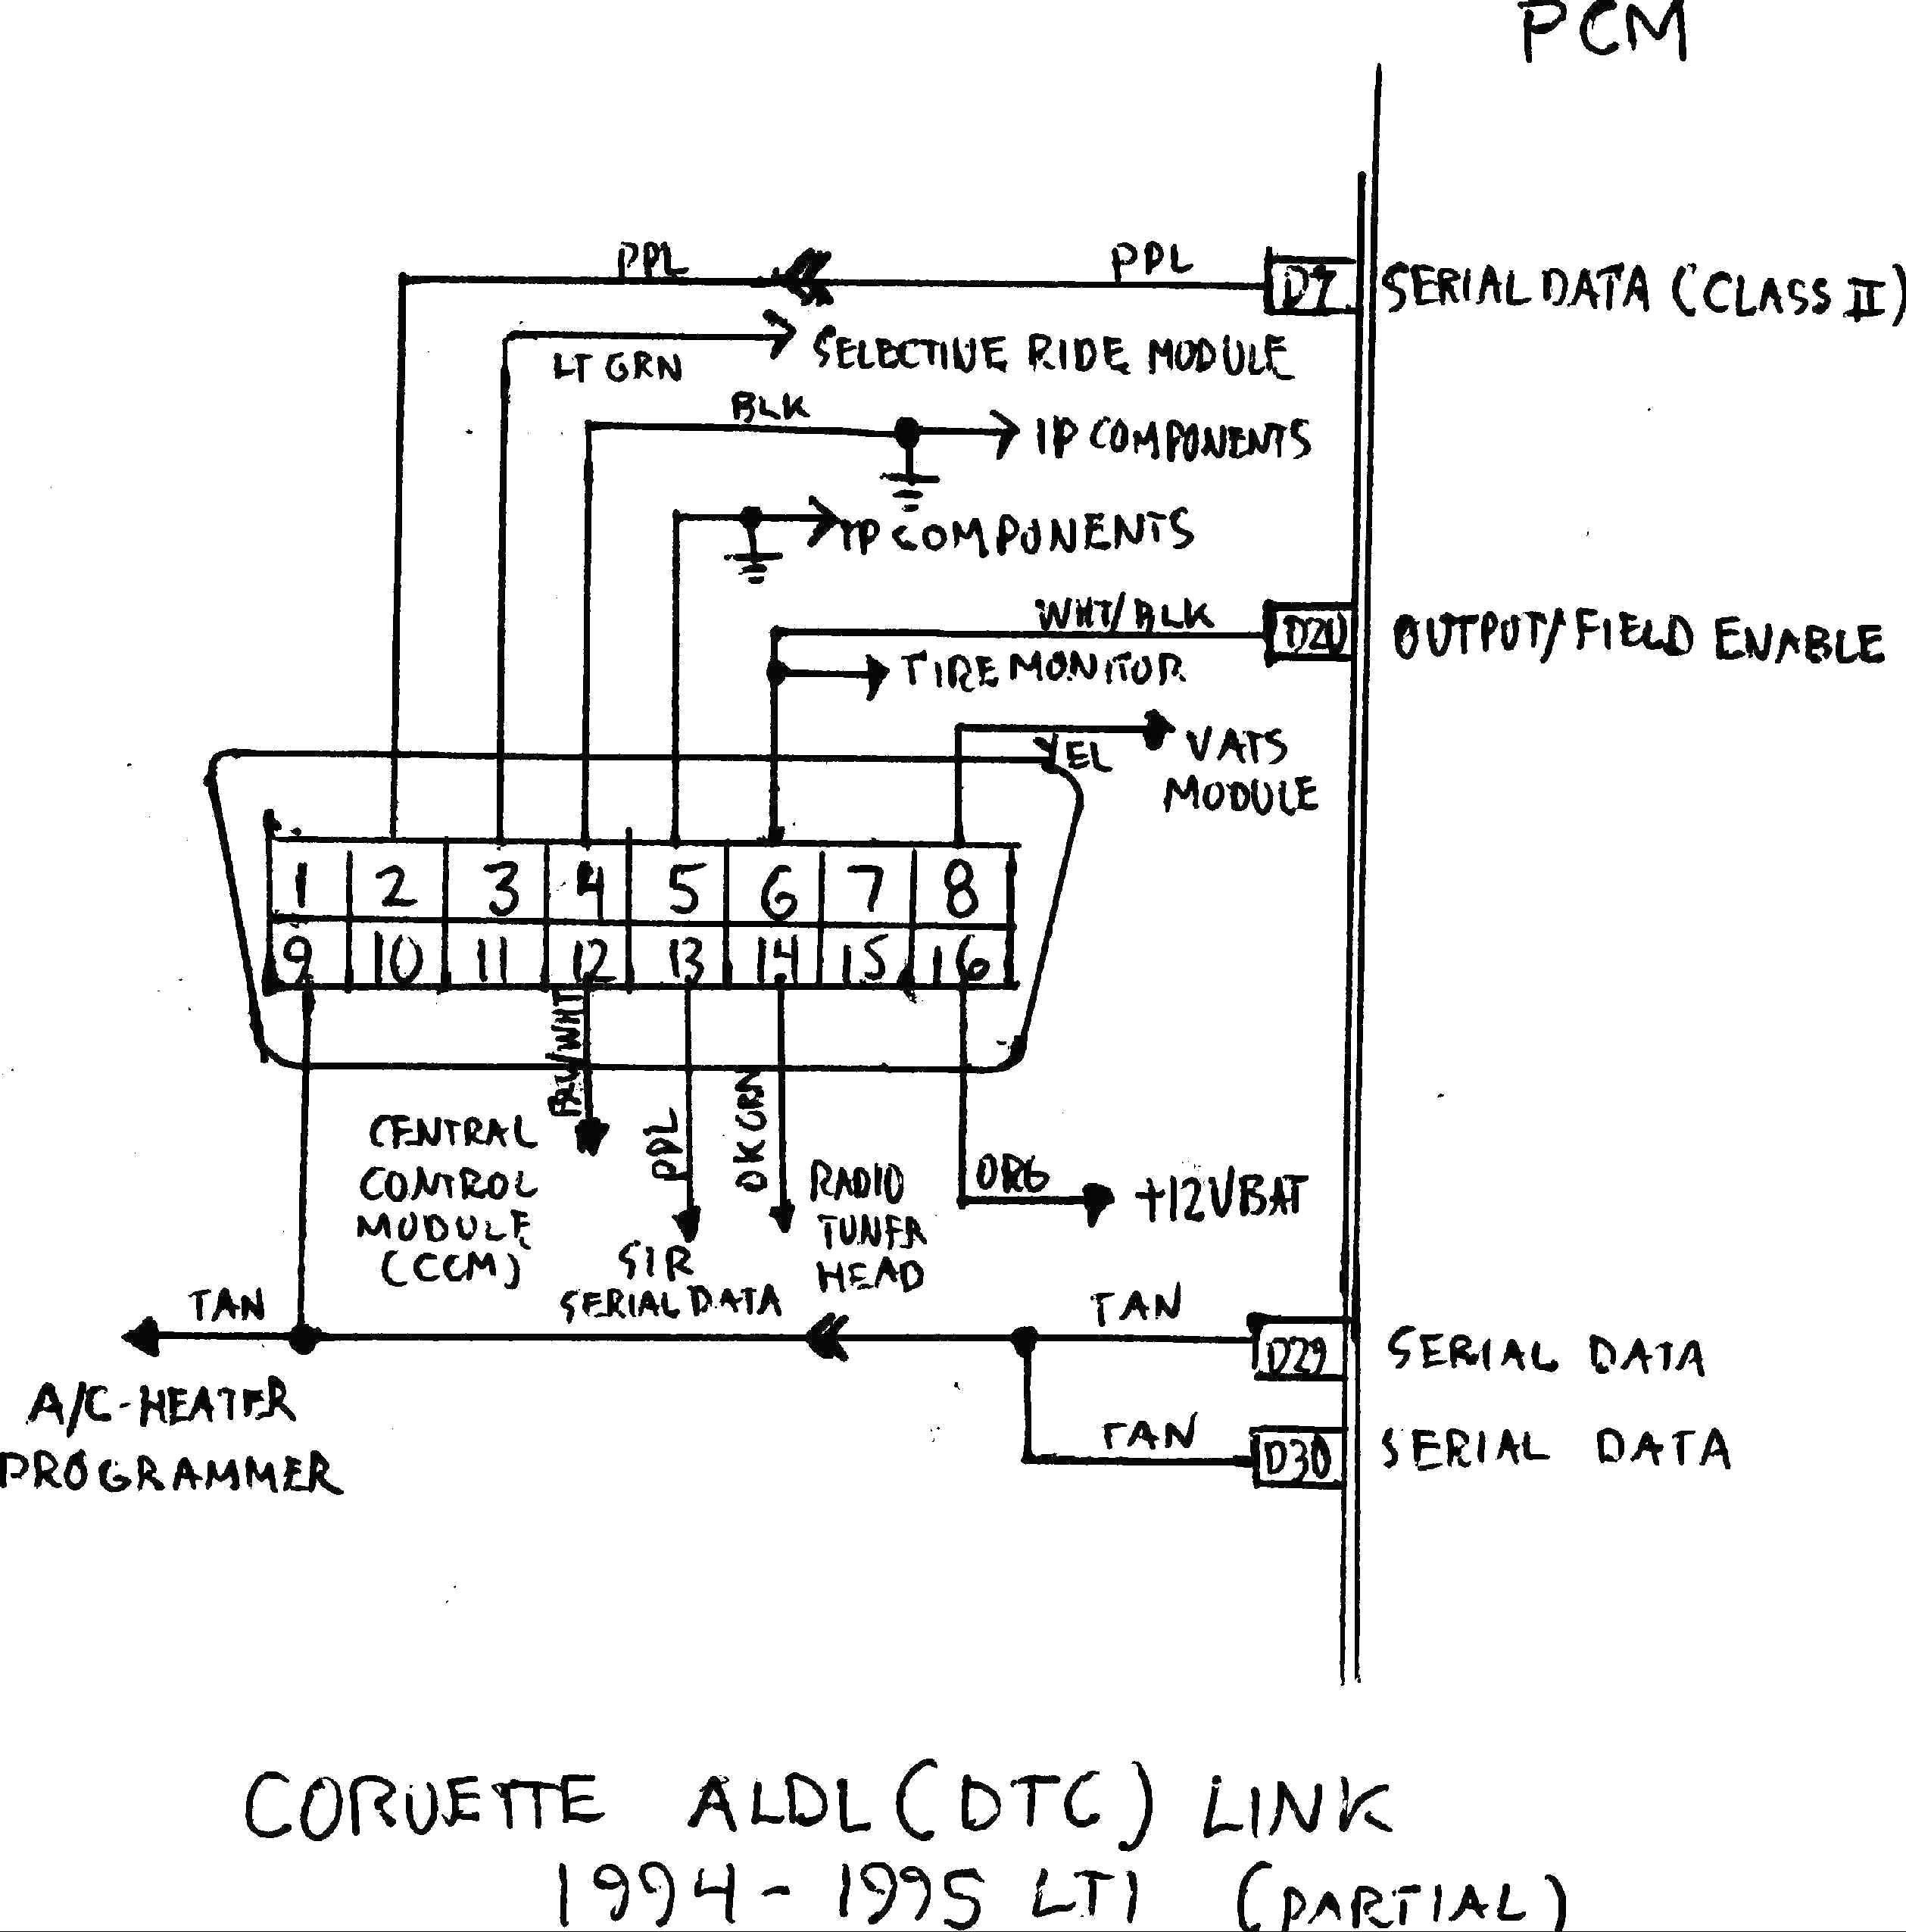 rs232 schematic rs232 rs485 schematic wiring diagram forward computerpowered rs232 circuit diagram tradeoficcom [ 2517 x 2551 Pixel ]